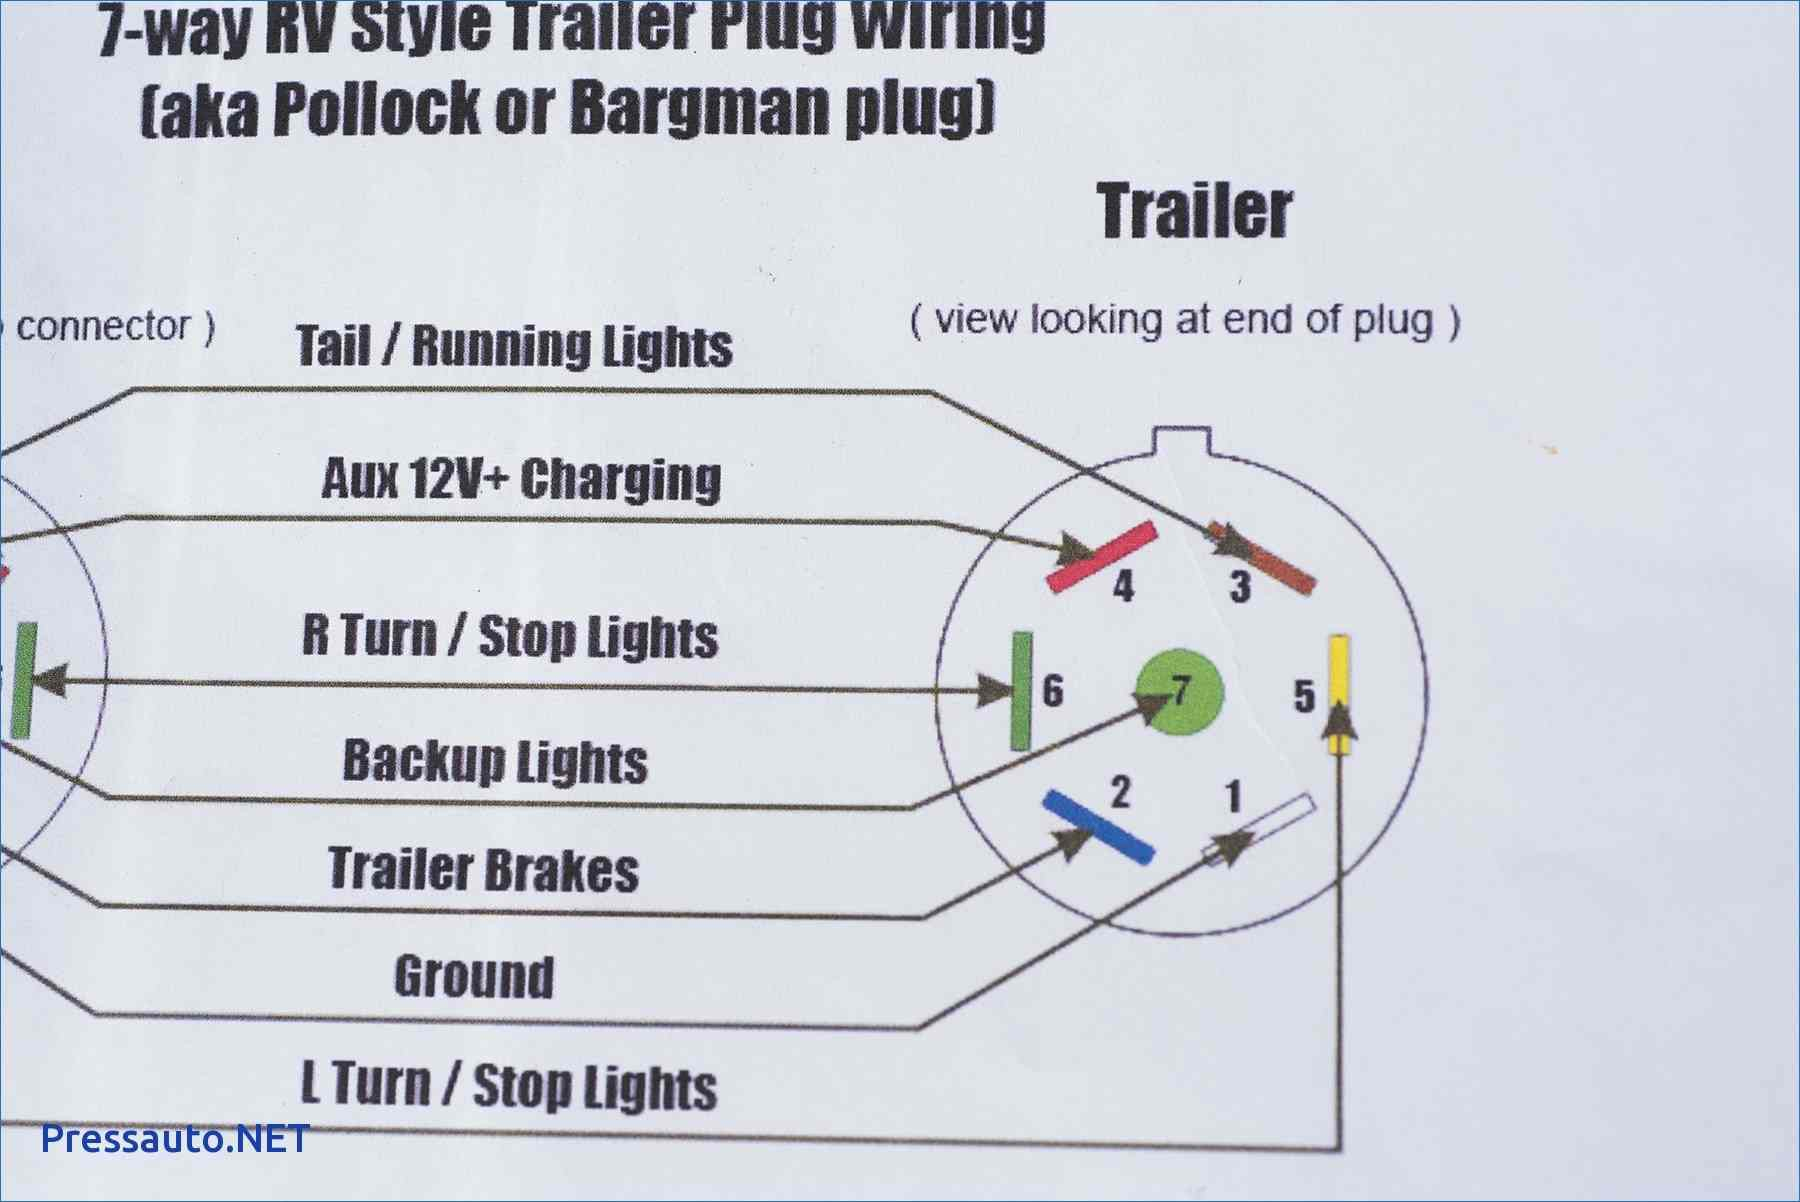 Ford 7 Way Plug Wiring | Manual E-Books - Wiring Diagram Trailer Plug